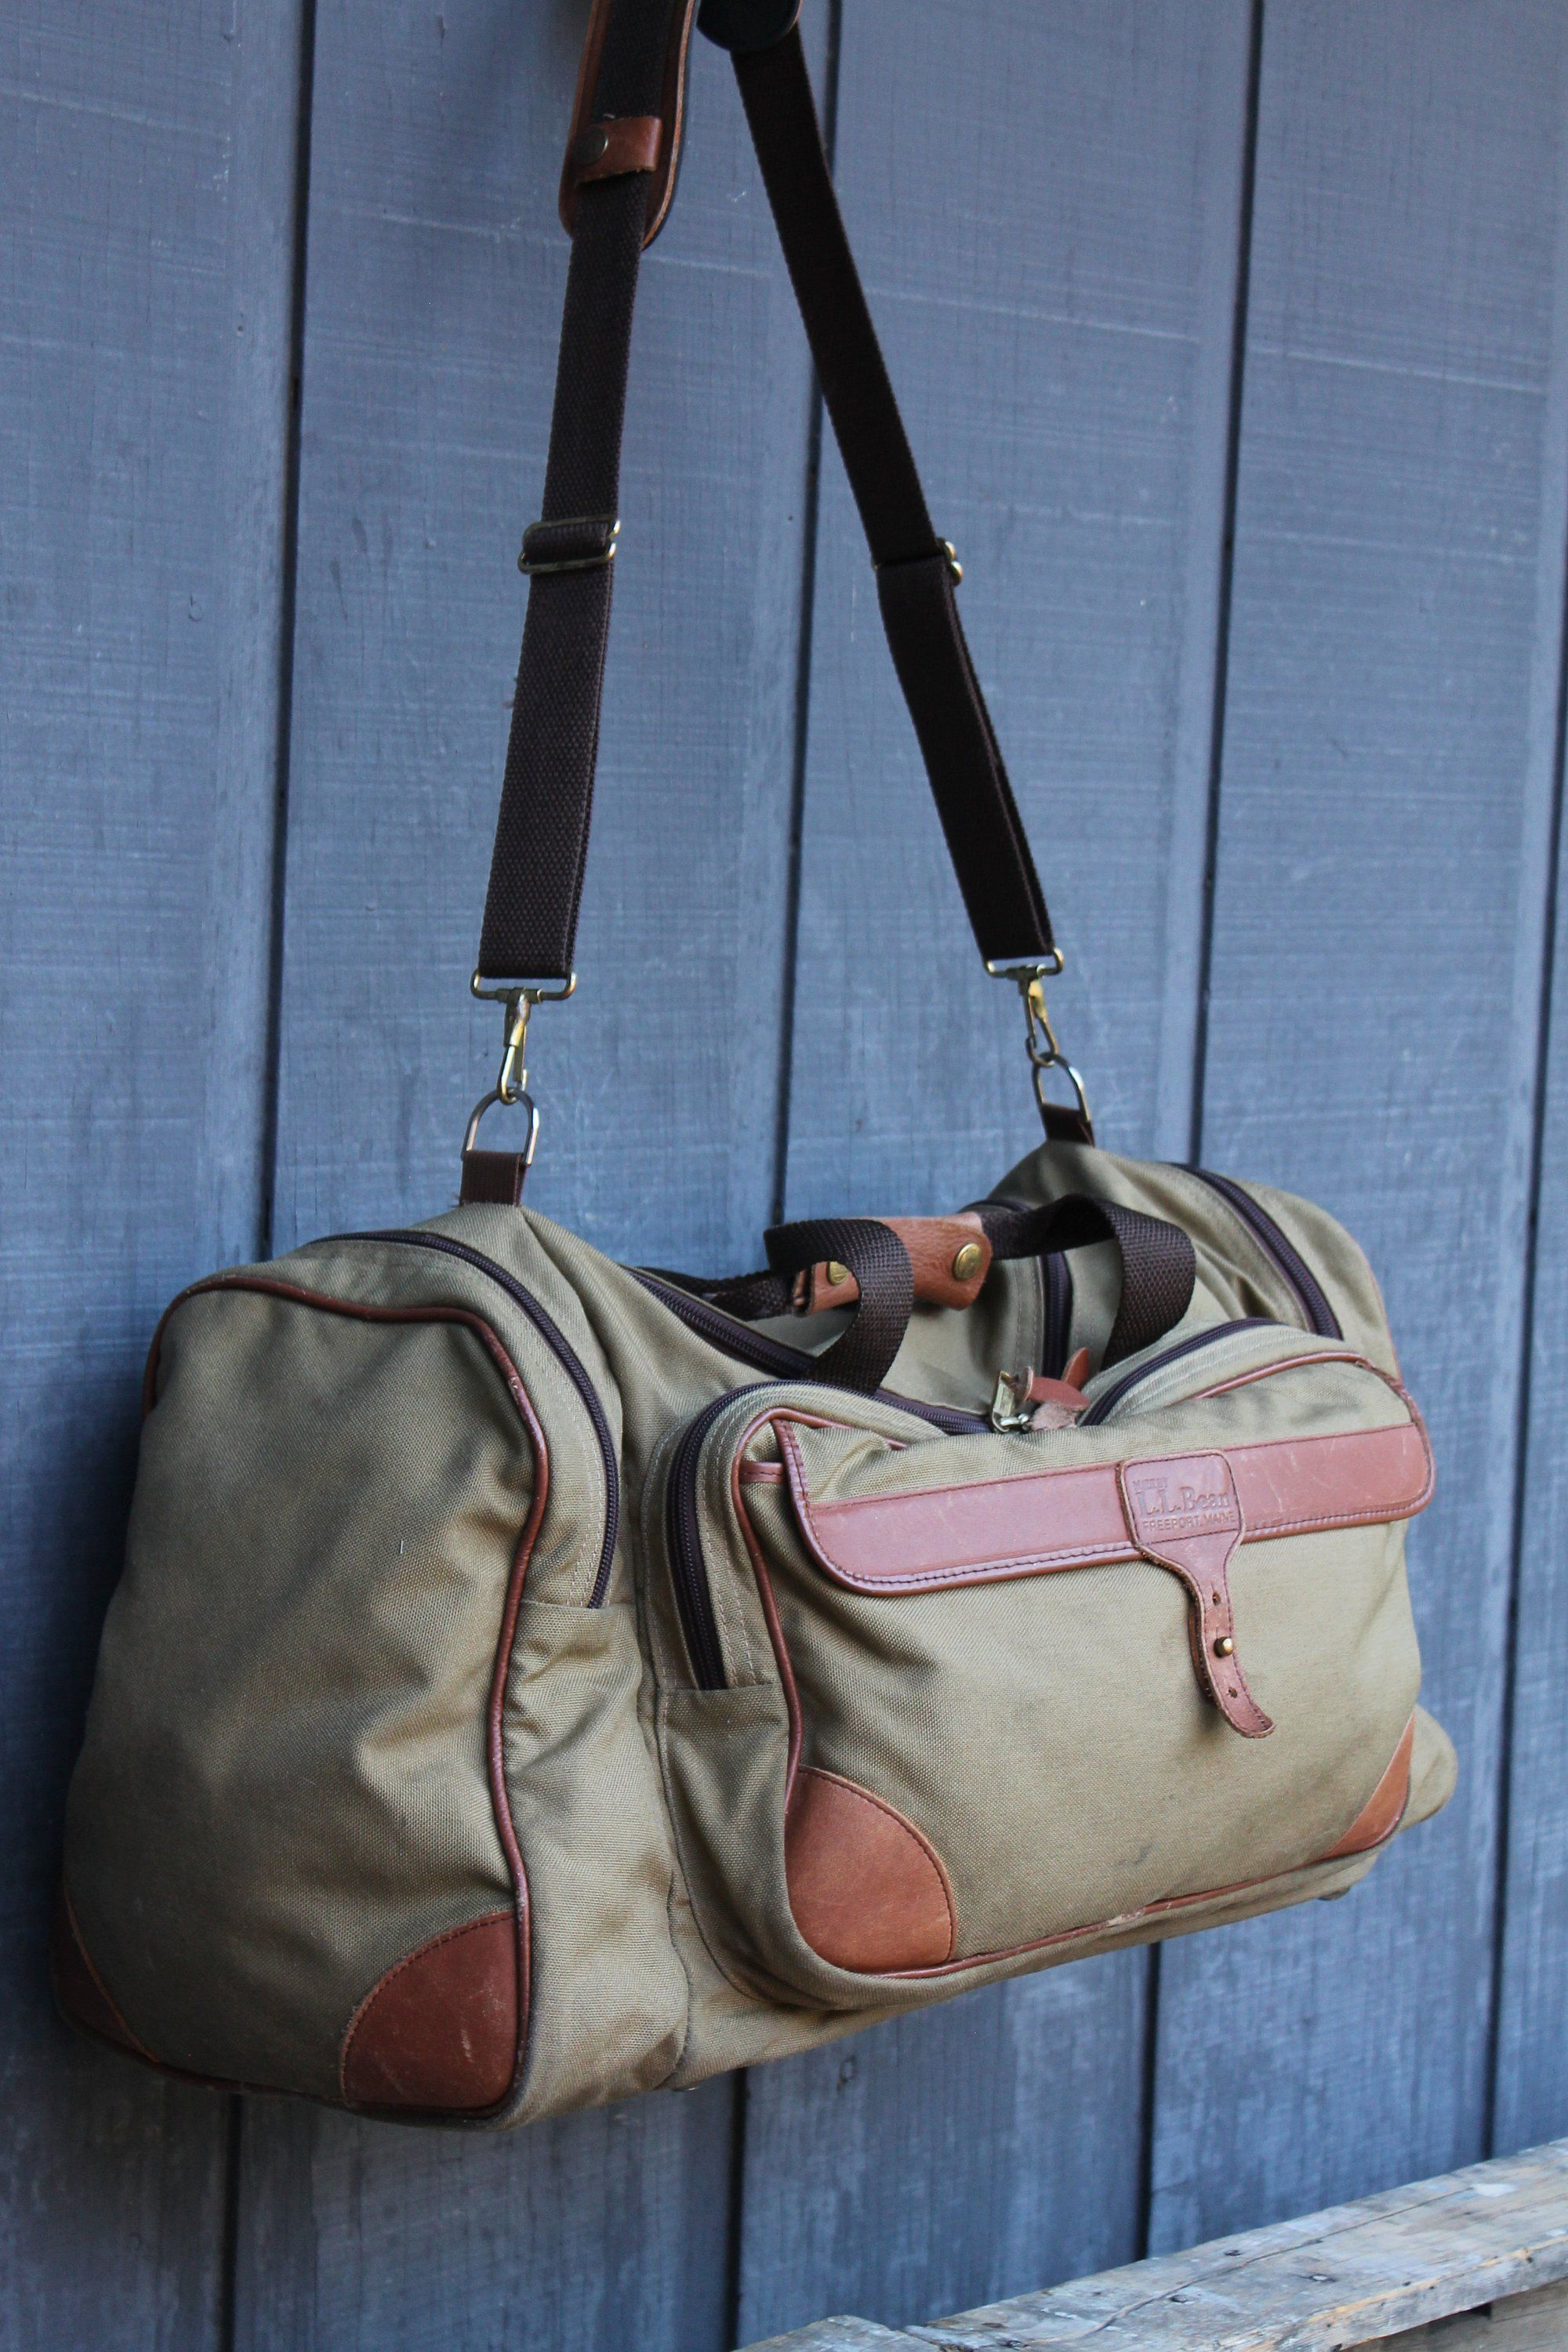 Vintage Unisex L L Bean Canvas With Leather Trim Duffle Travel Luggage Bag Bags Duffle Luggage Bags